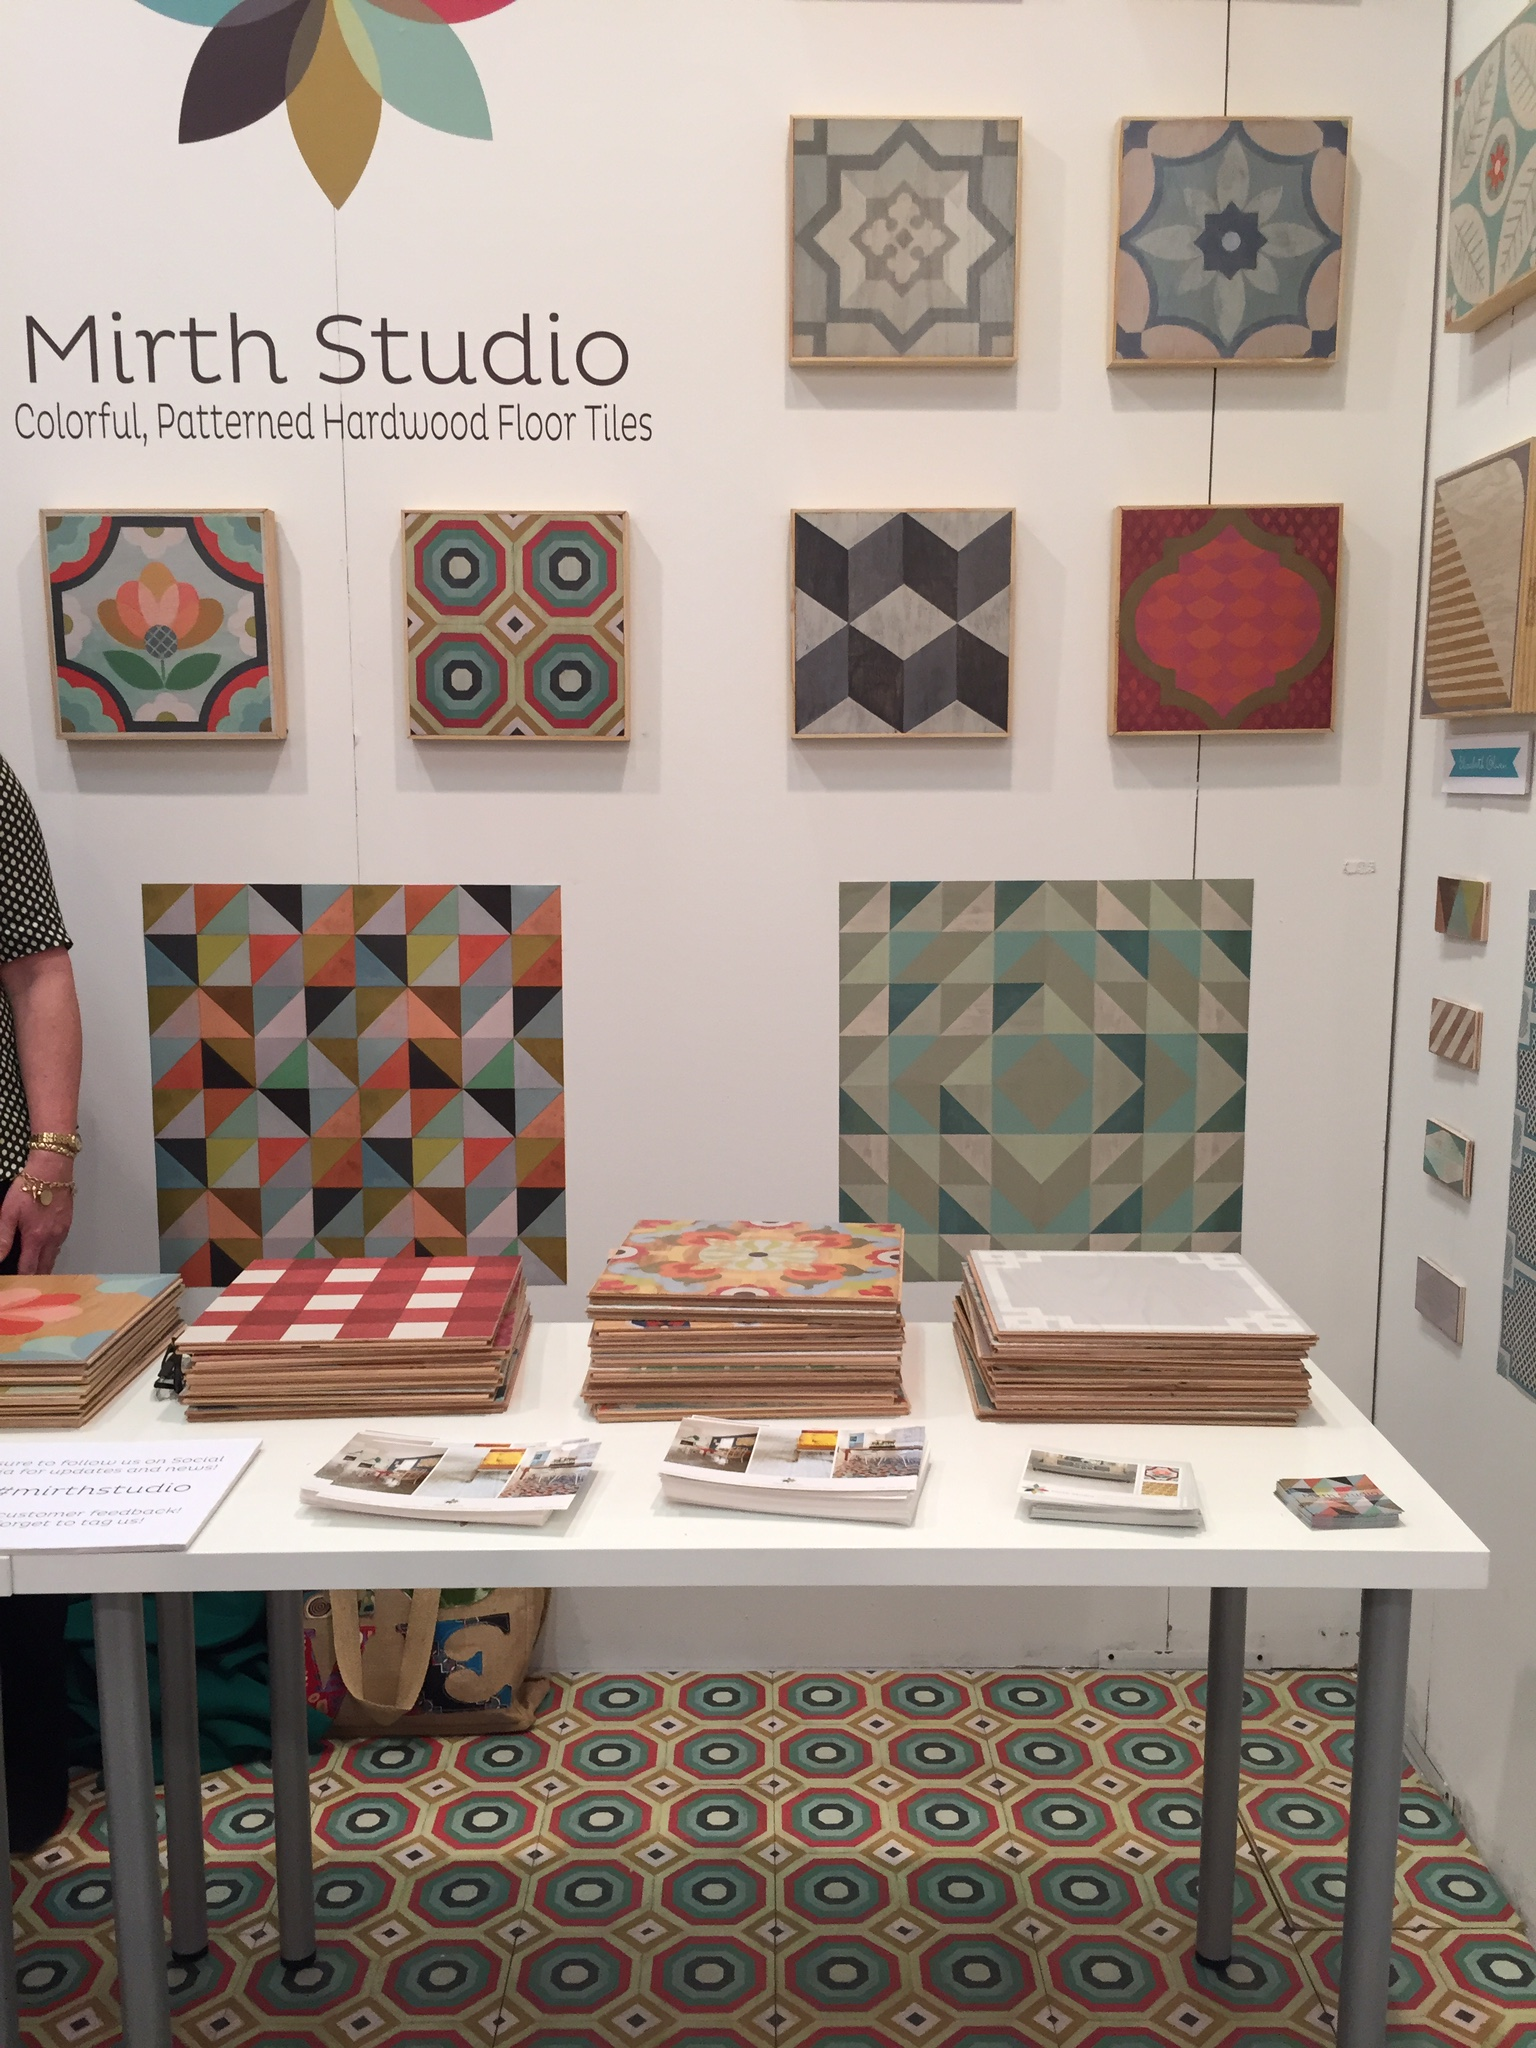 colorful and funky patterned wood floor tiles by Mirth Studio gets us imagining their potential uses.